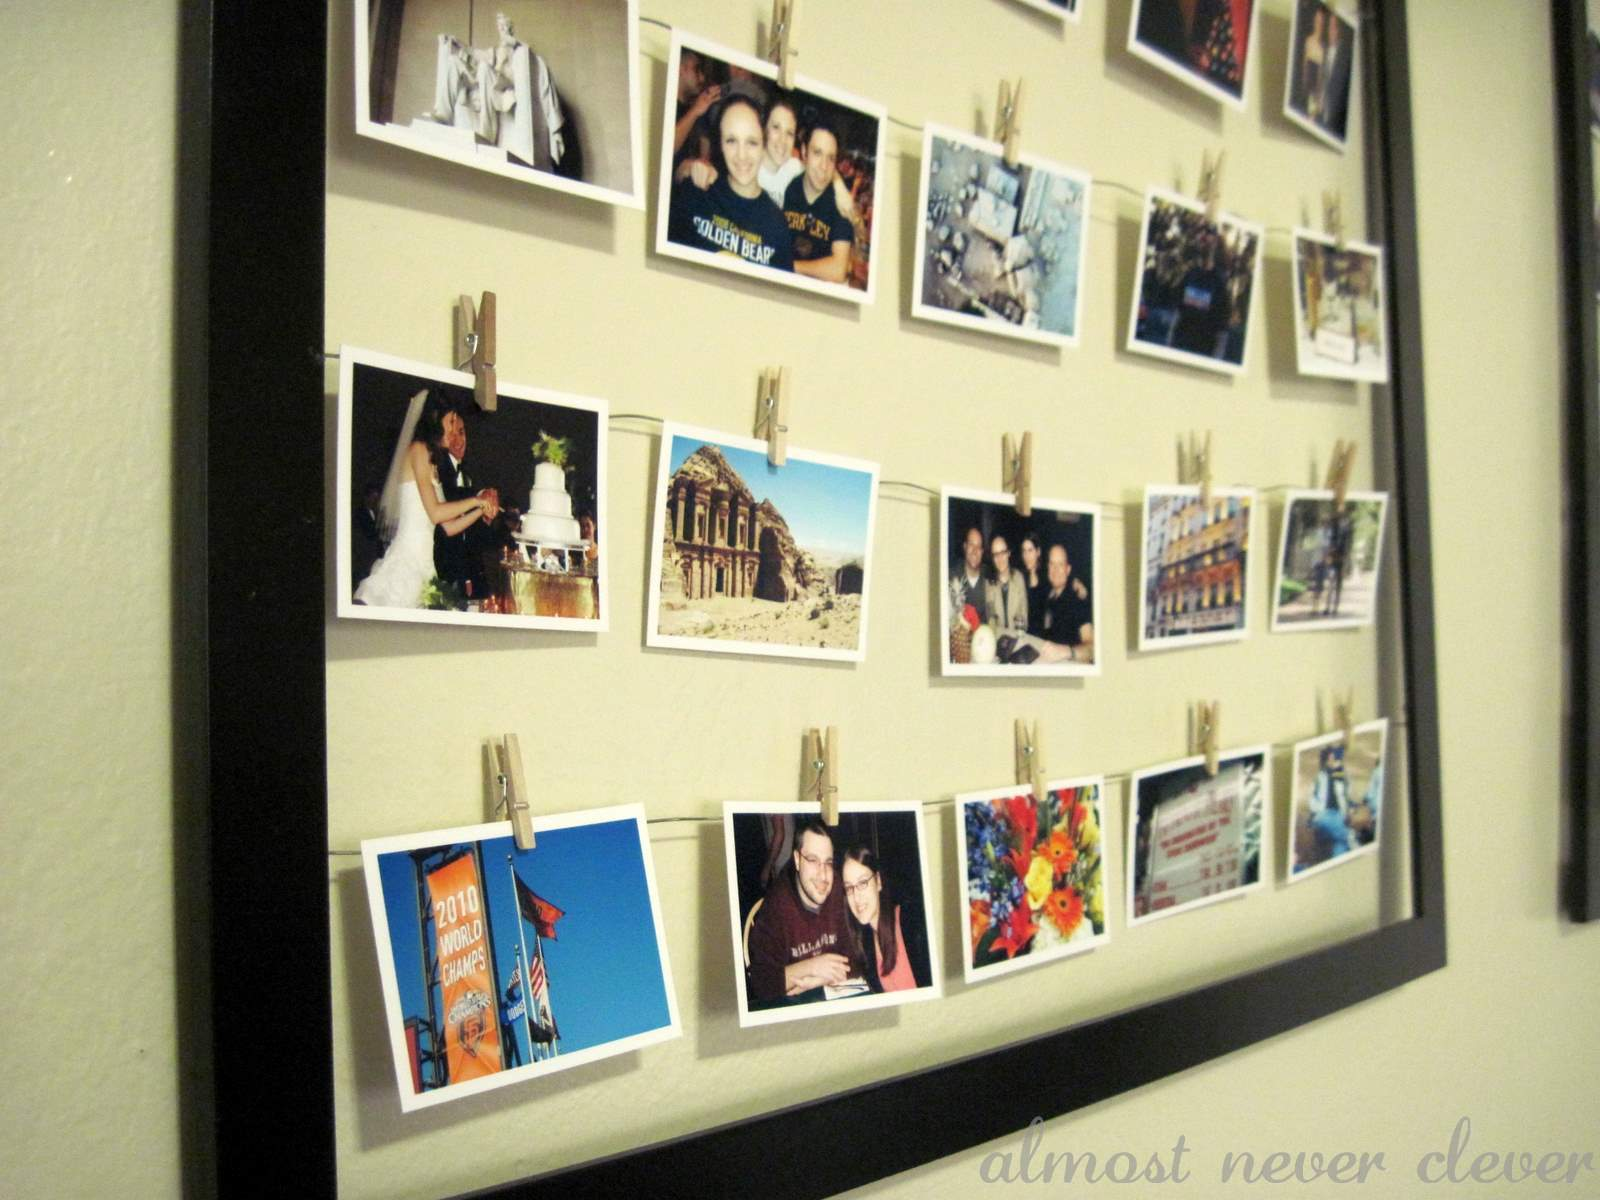 Office Wall Frames. Photo Wall Art. Office Frames L - Brint.co